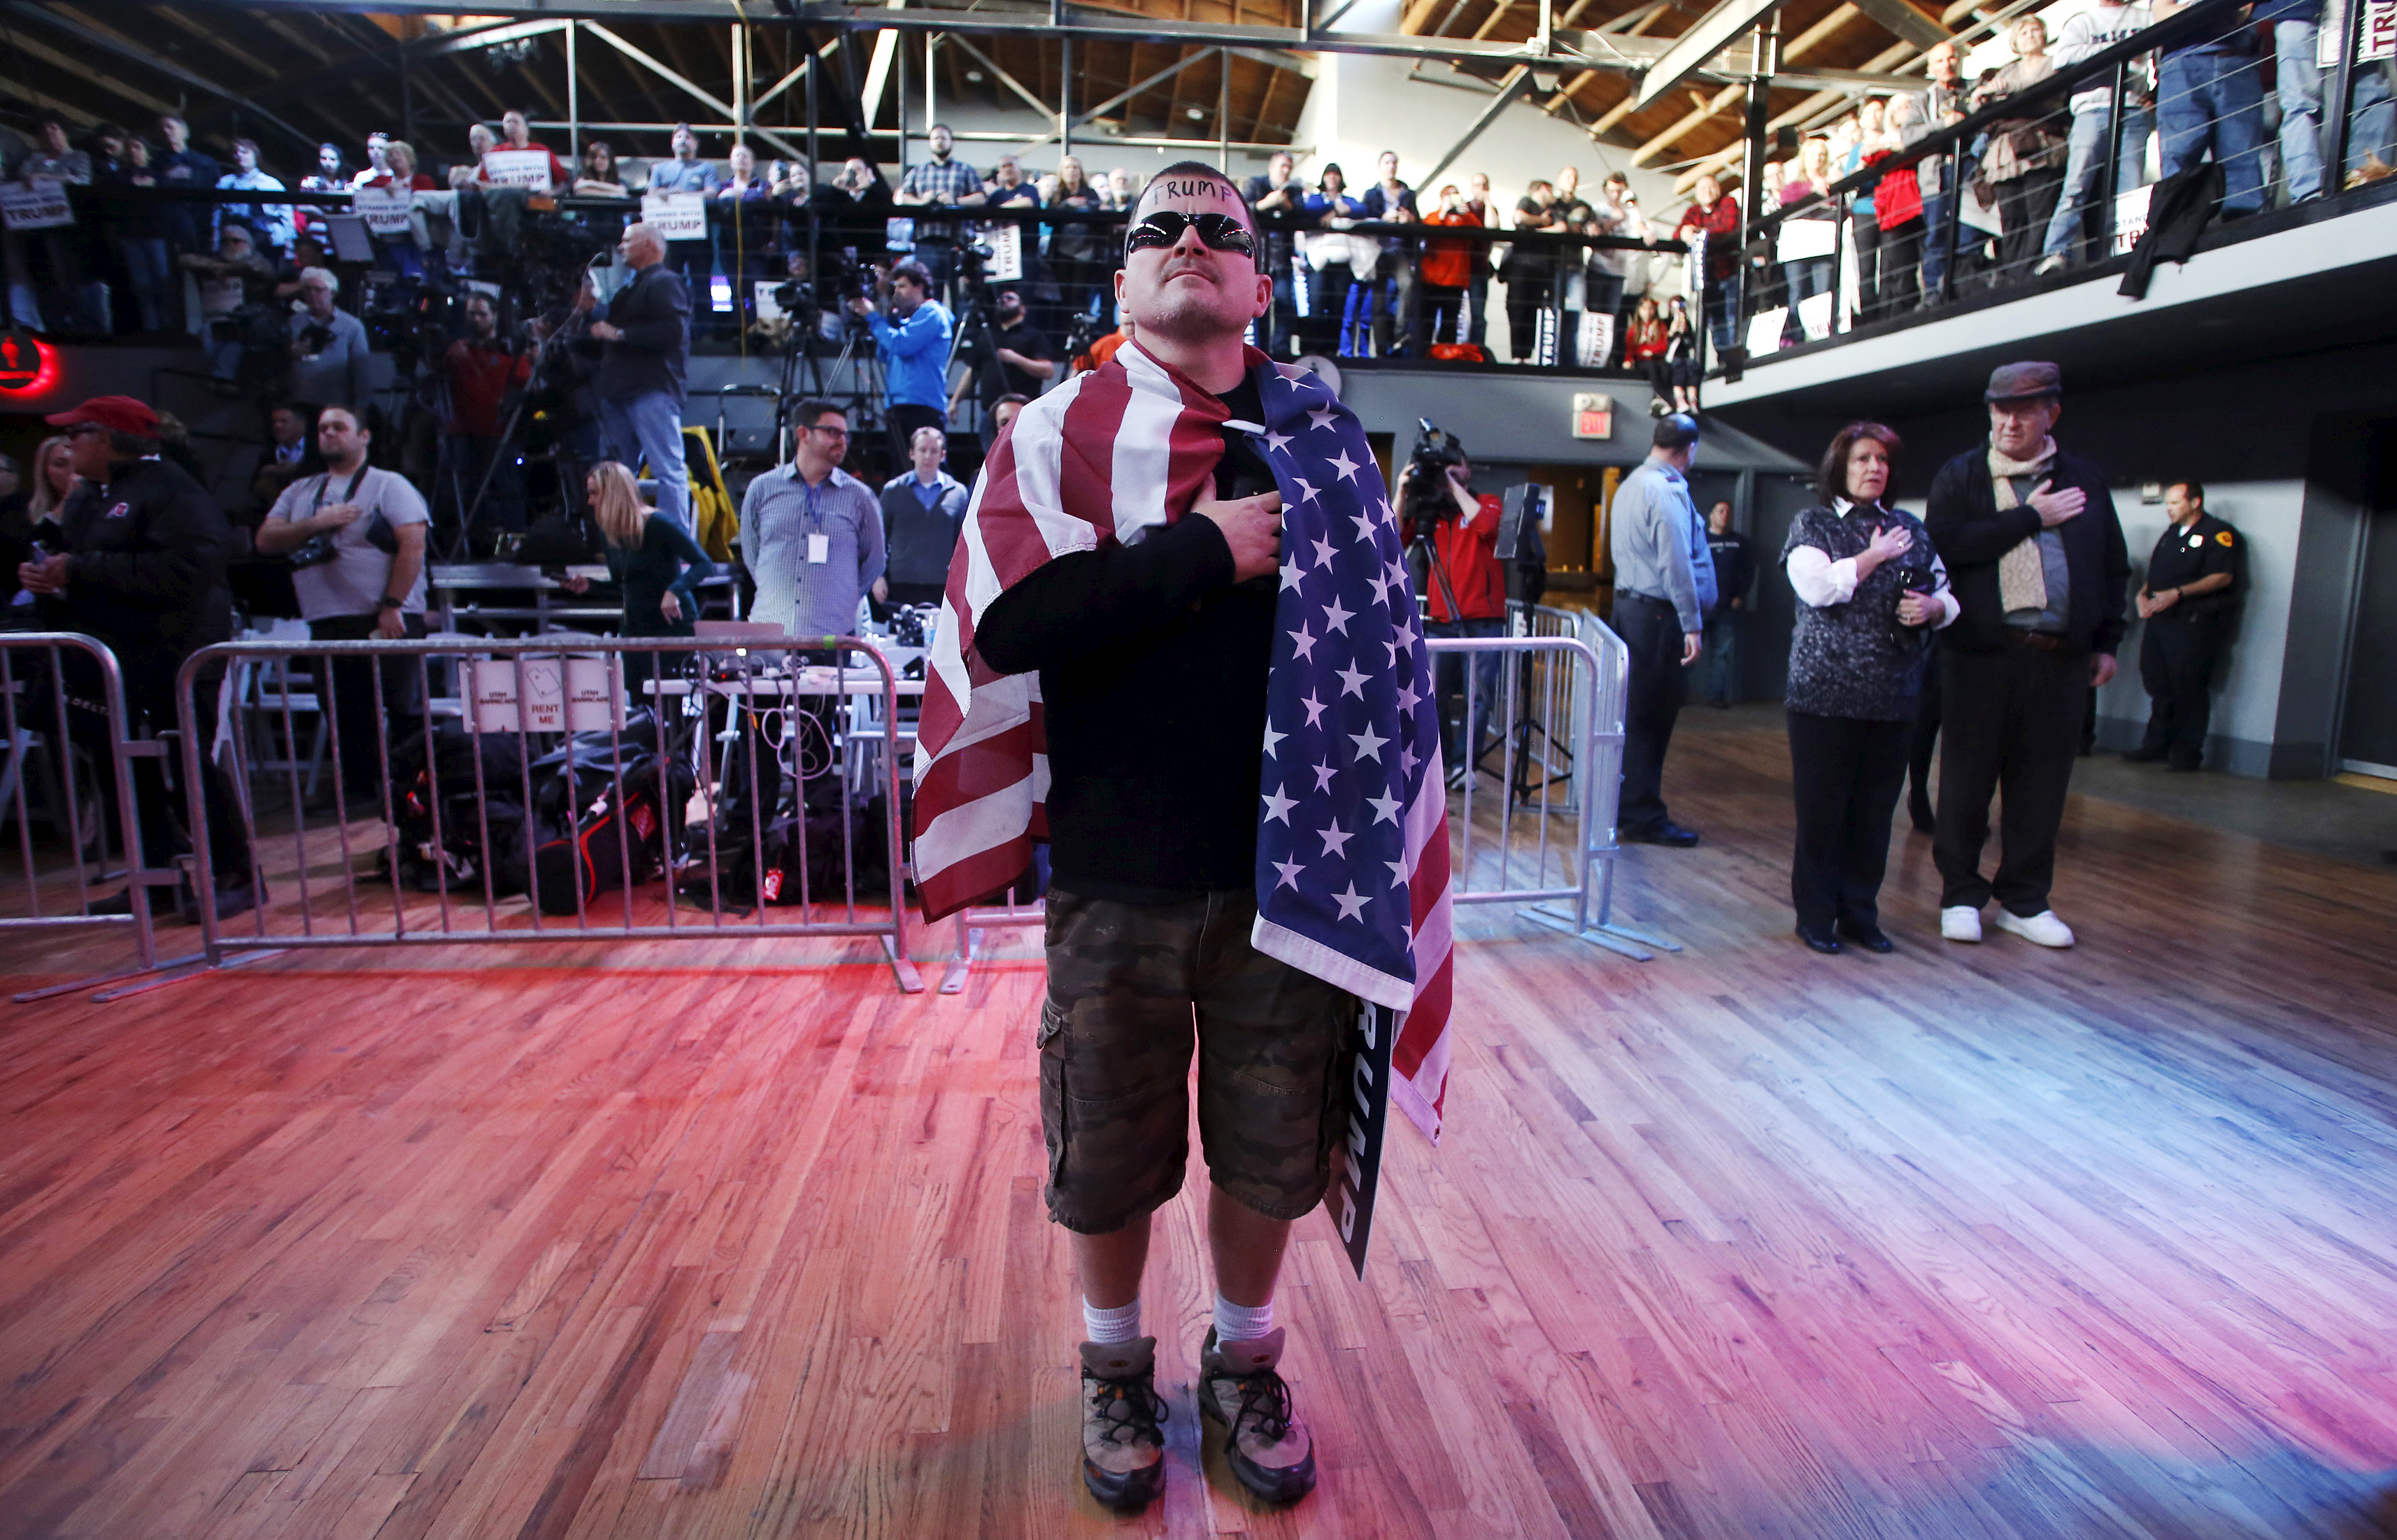 Supporter Jansen Tropf wears an American flag at a campaign rally for Republican U.S. presidential candidate Donald Trump in Salt Lake City, Utah March 18, 2016. Photo by Jim Urquhart/Reuters